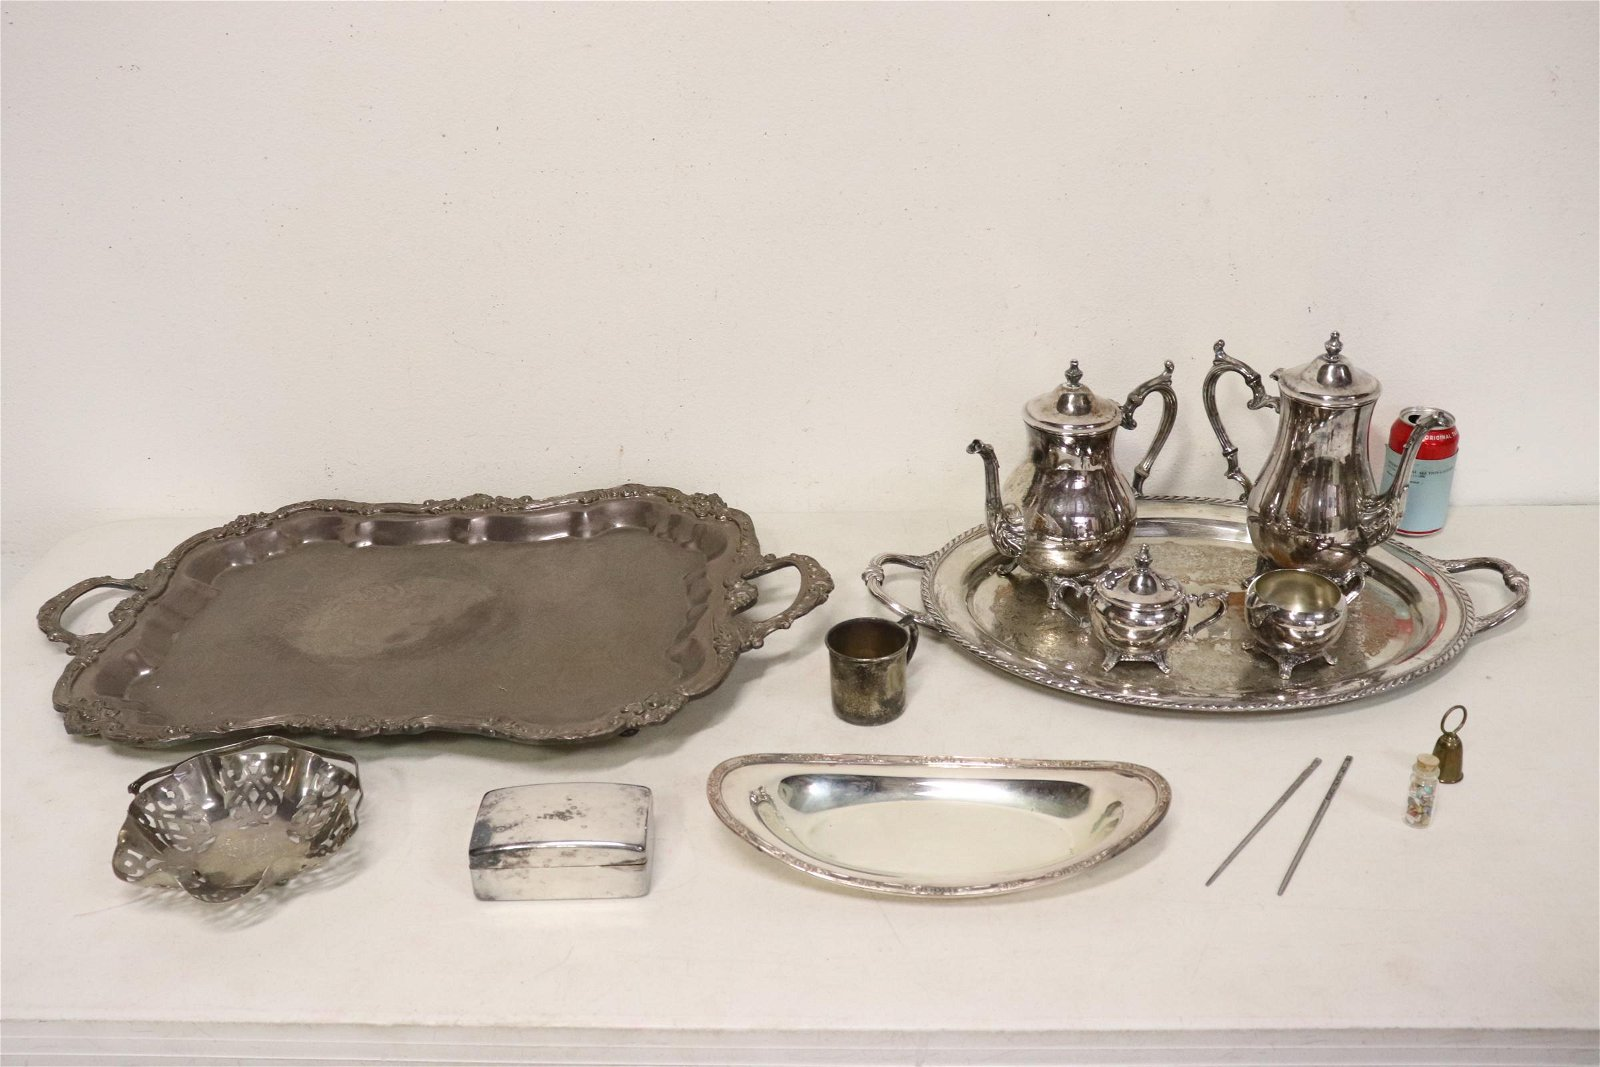 s/p tea and coffee set w/ tray, a lg serving tray &